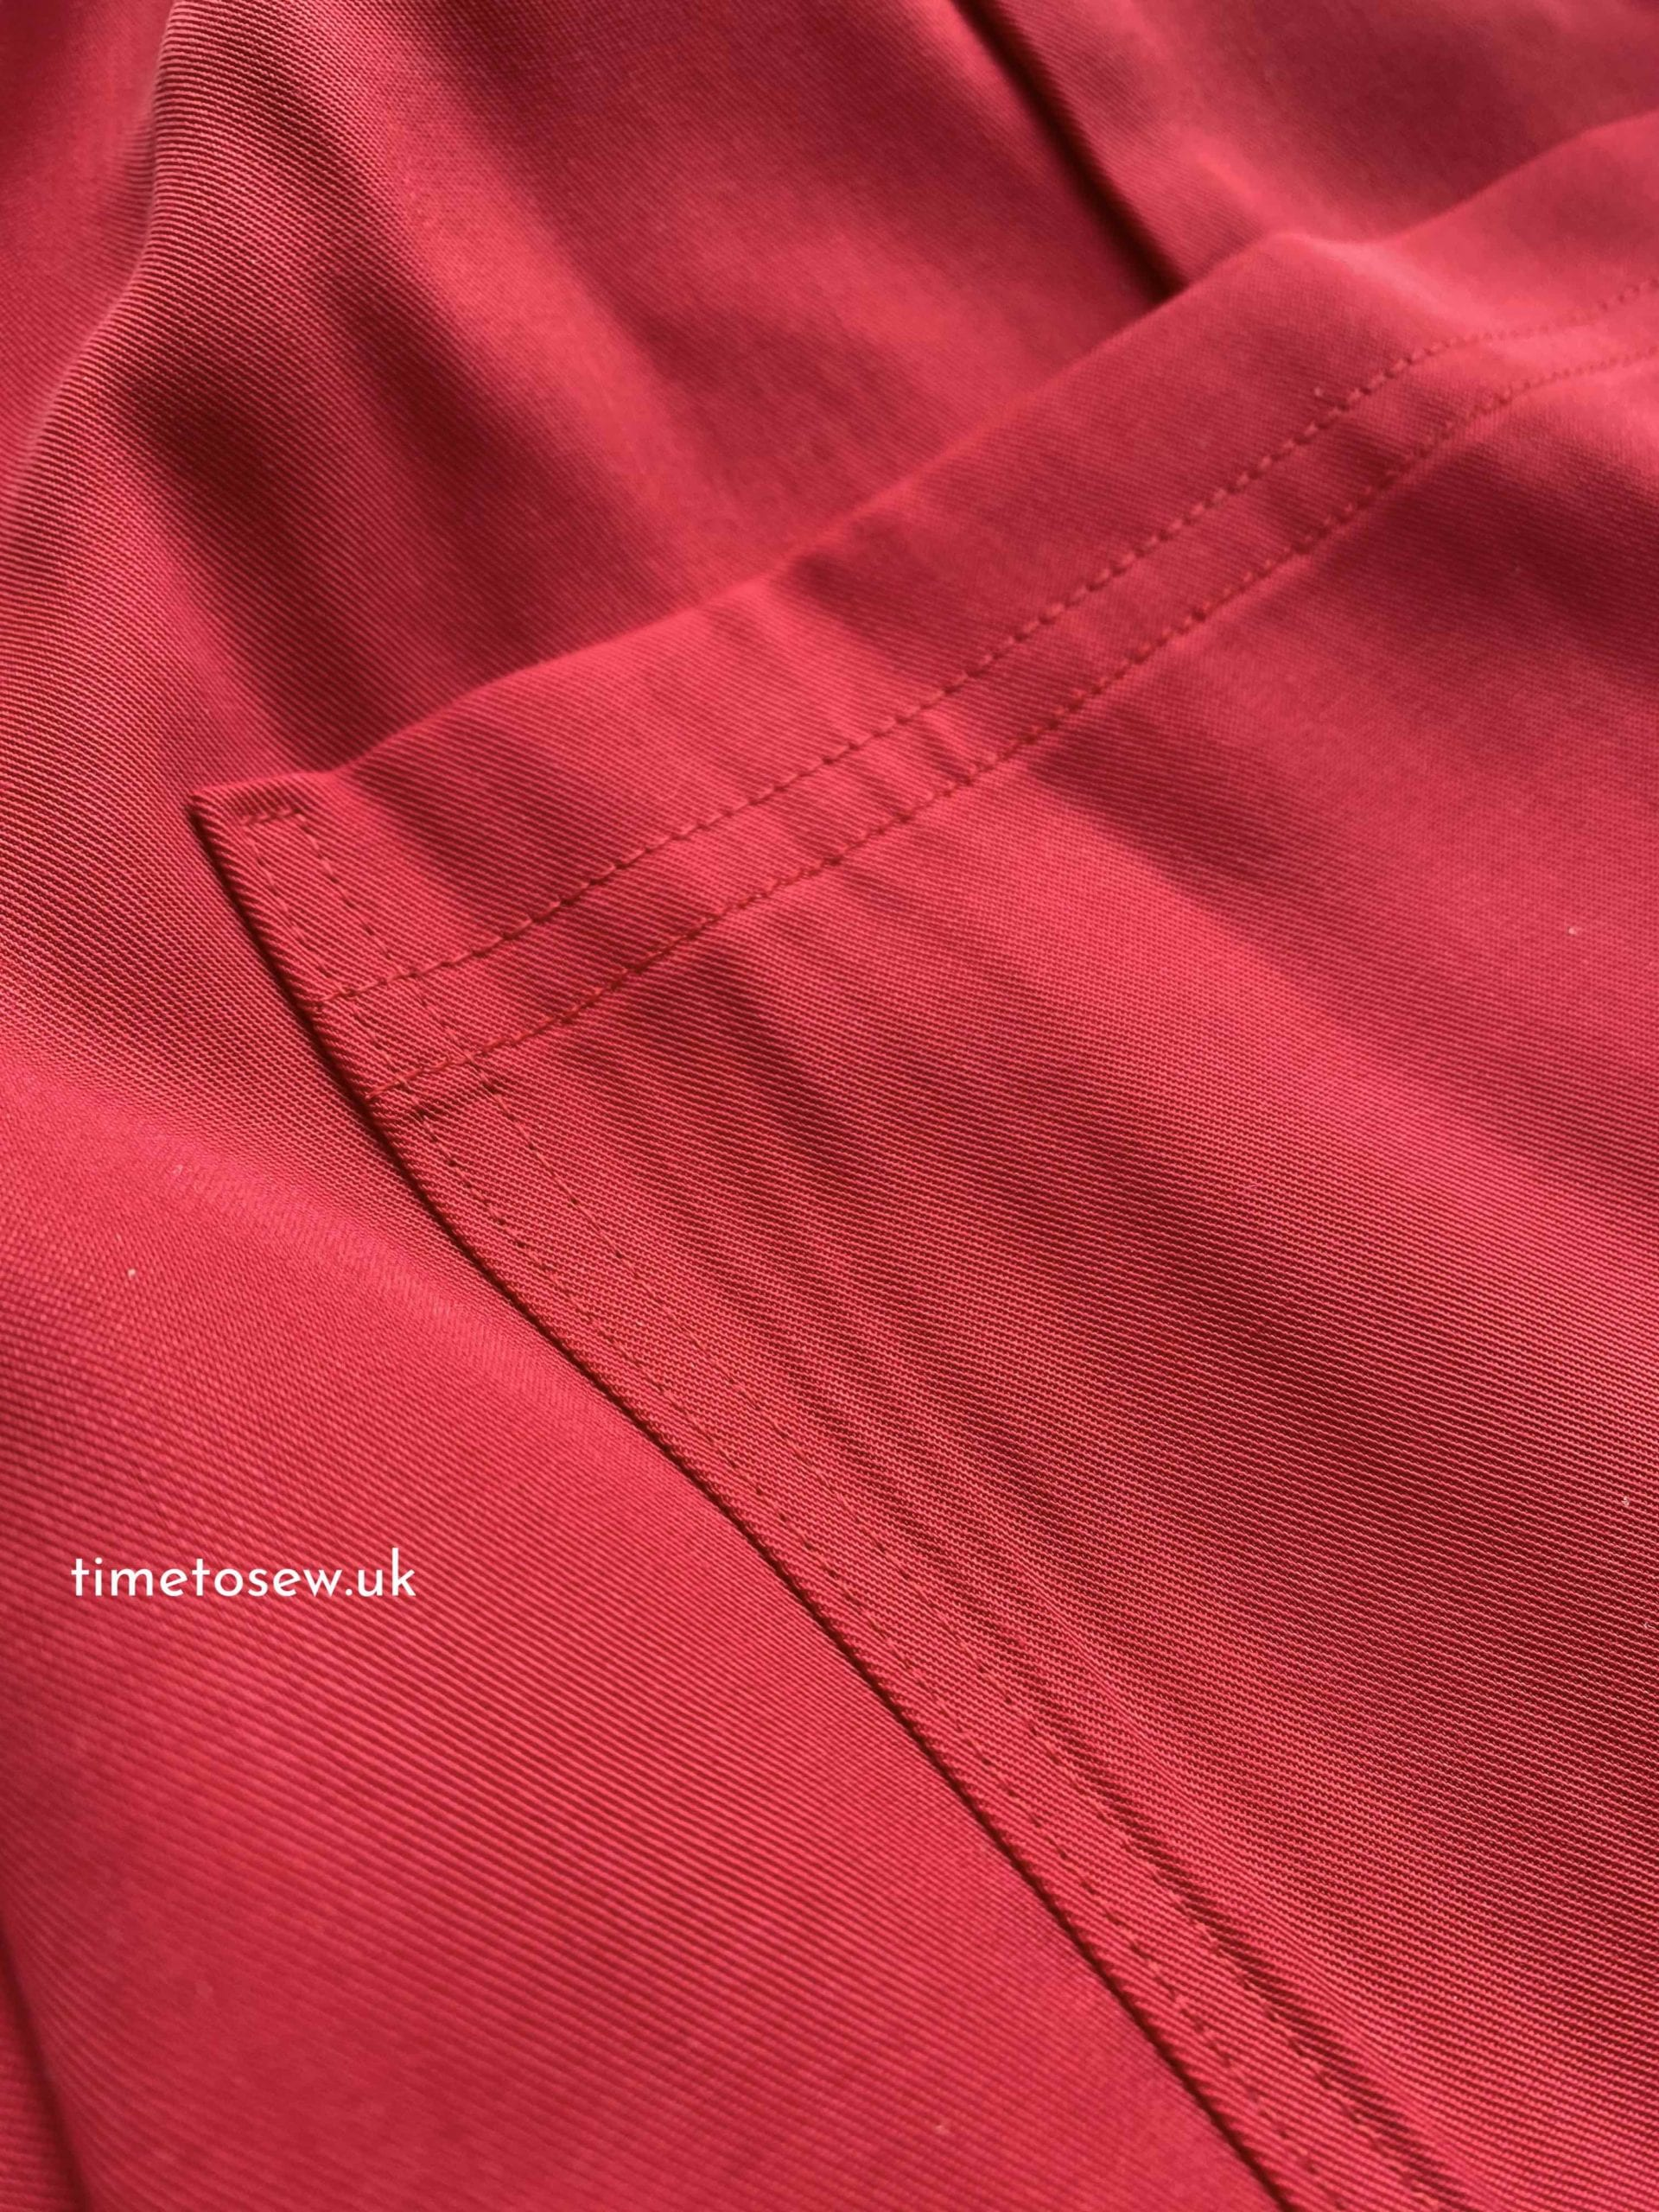 Sewing details, double topstitching on the pocket of a red garment